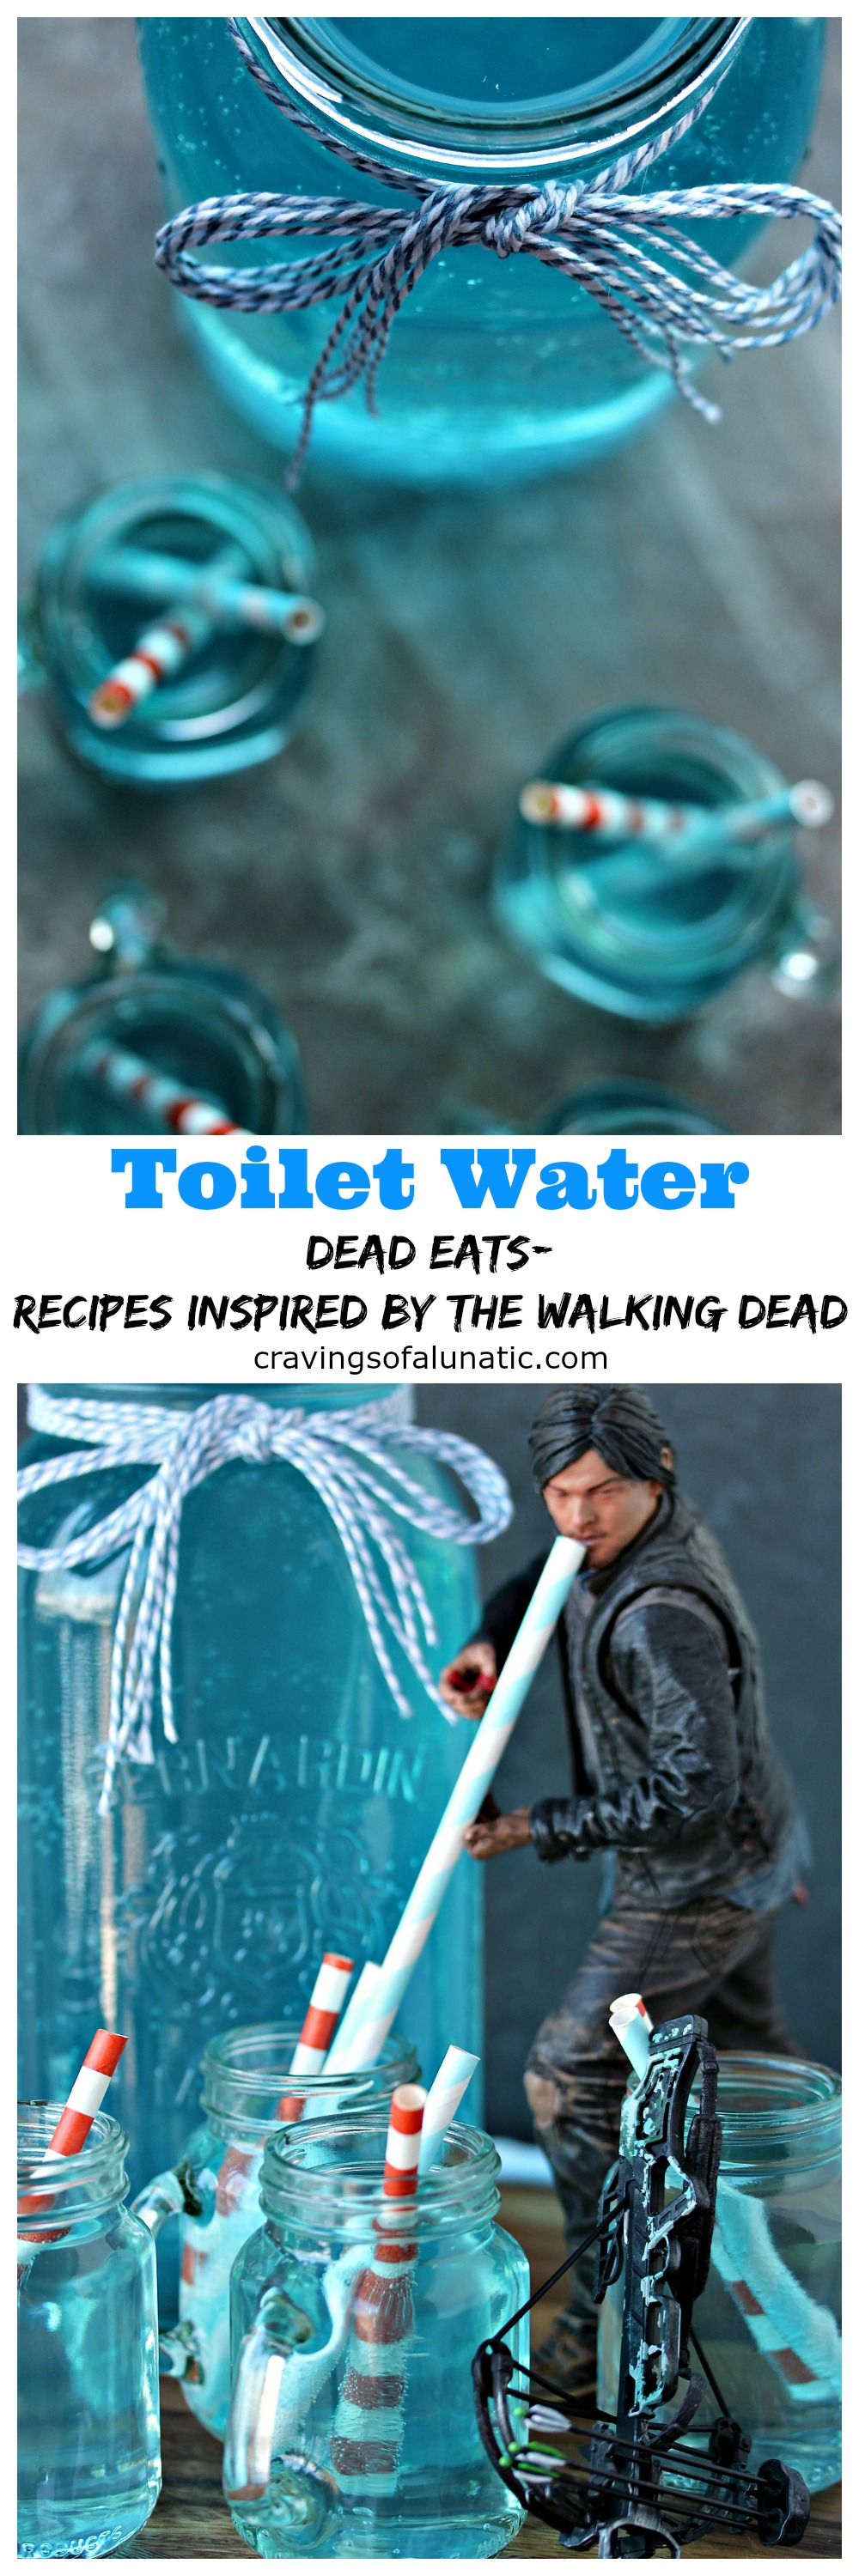 toilet water drink recipe cravings of a lunatic